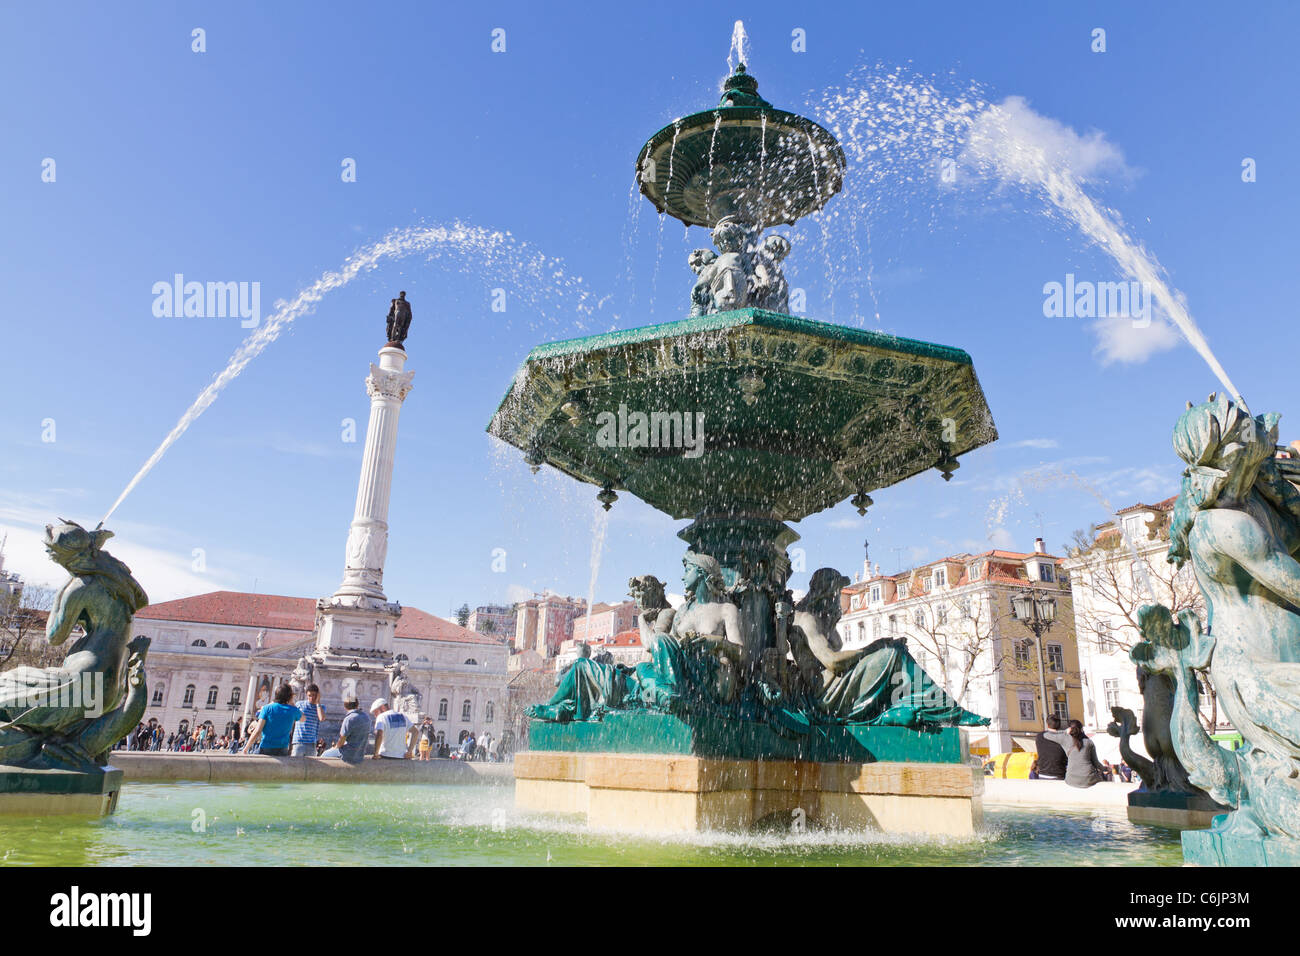 Baroque fountain on rossio square the liveliest placa in Lisbon with wavy cobble stone pattern, Portugal Stock Photo